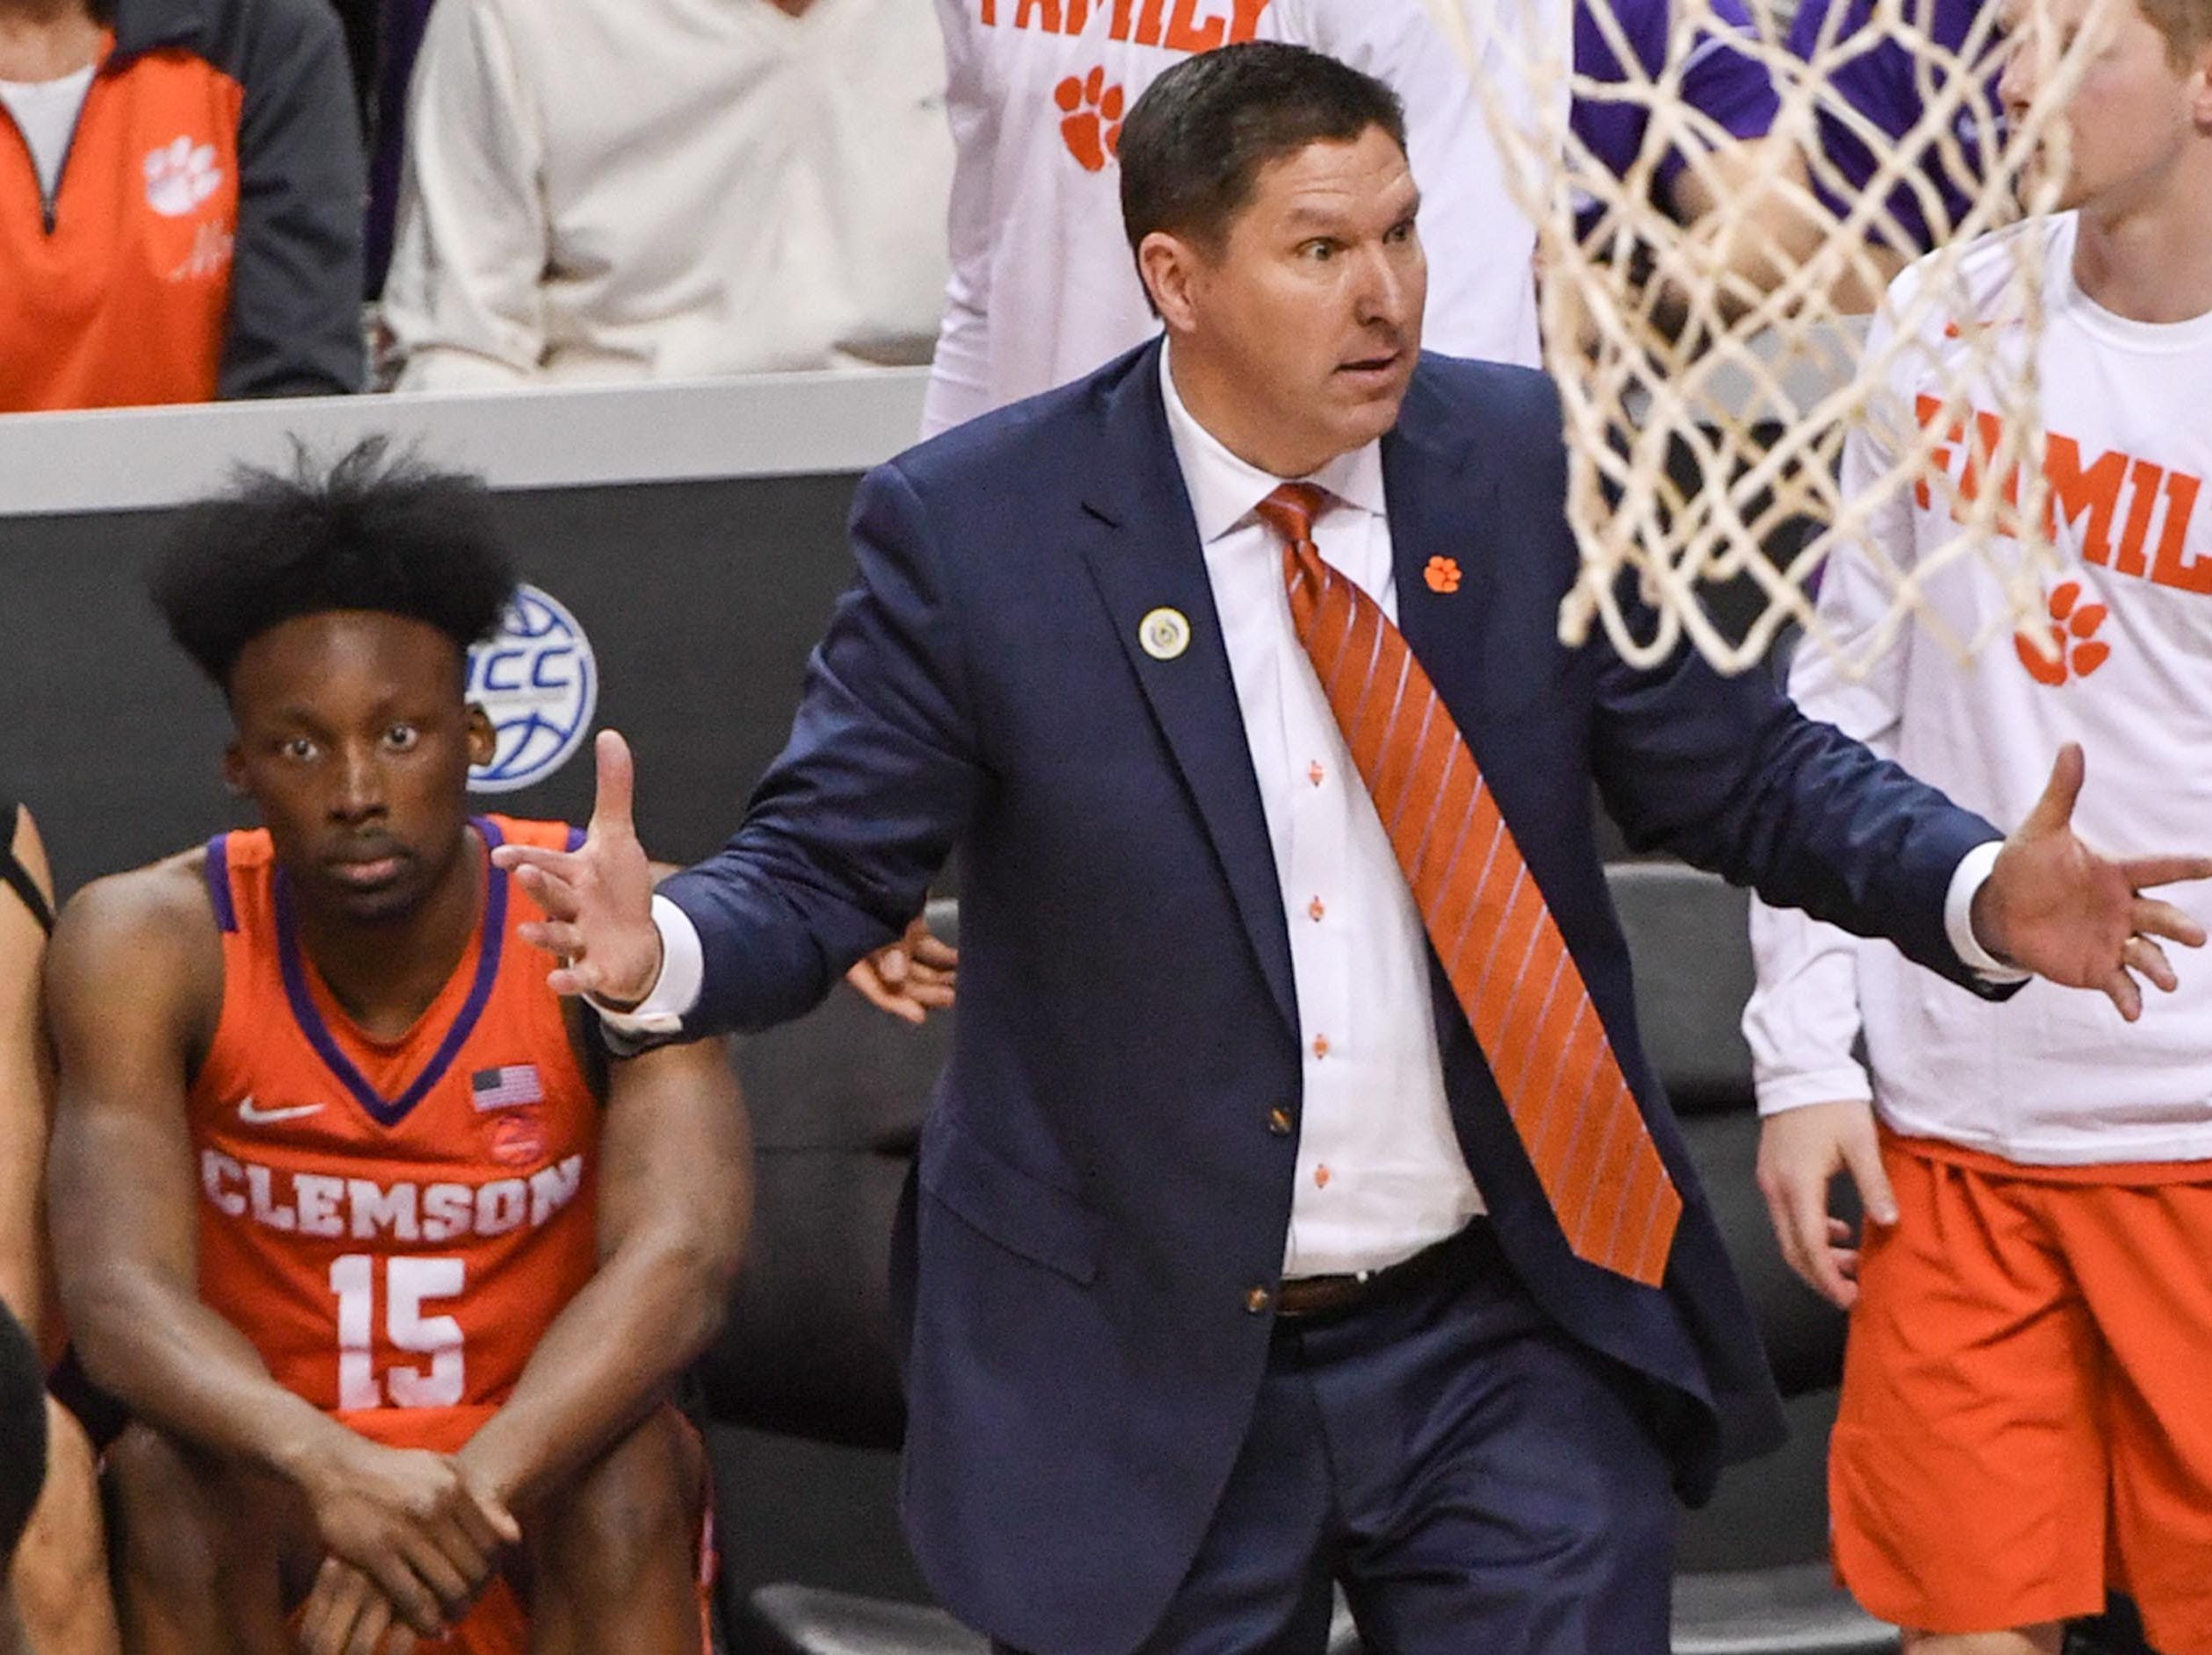 Clemson head coach Brad Brownell reacts after a call during the second half with N.C. State at the Spectrum Center in Charlotte, N.C. Tuesday, March 12, 2019.